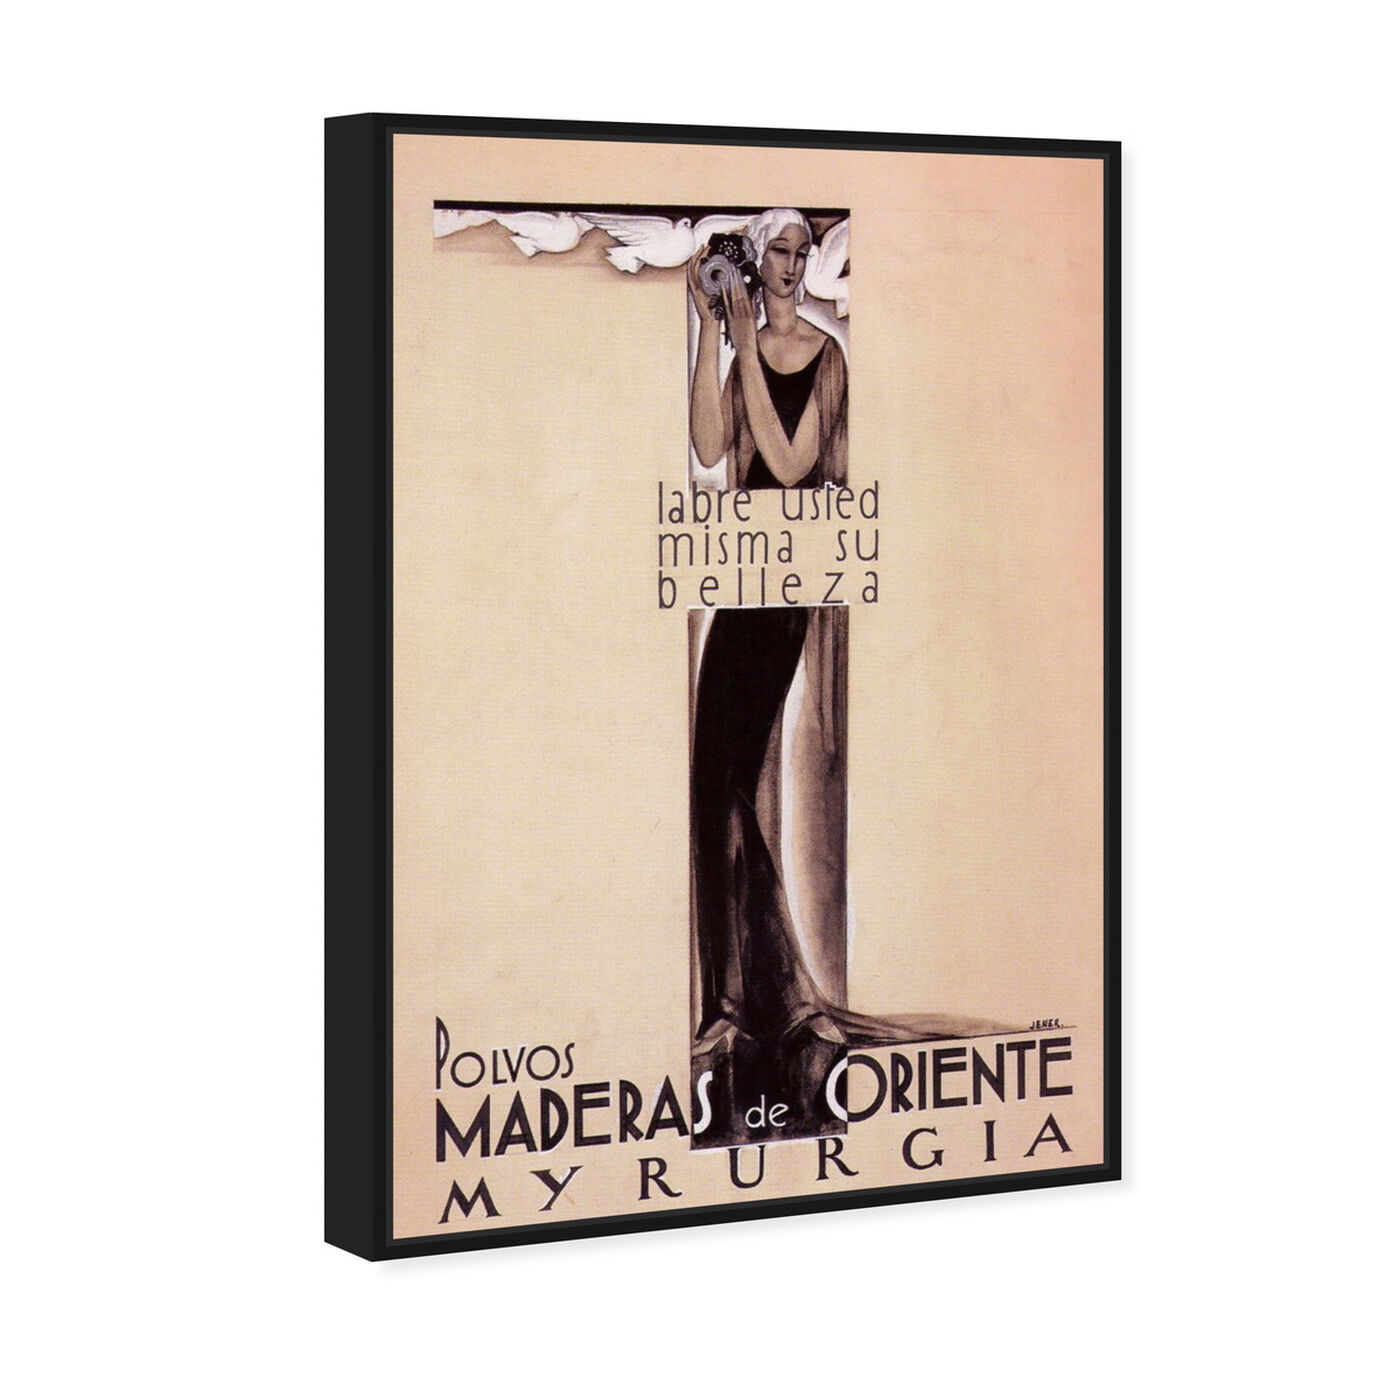 Angled view of Maderas de Oriente Vintage Ad featuring advertising and posters art.